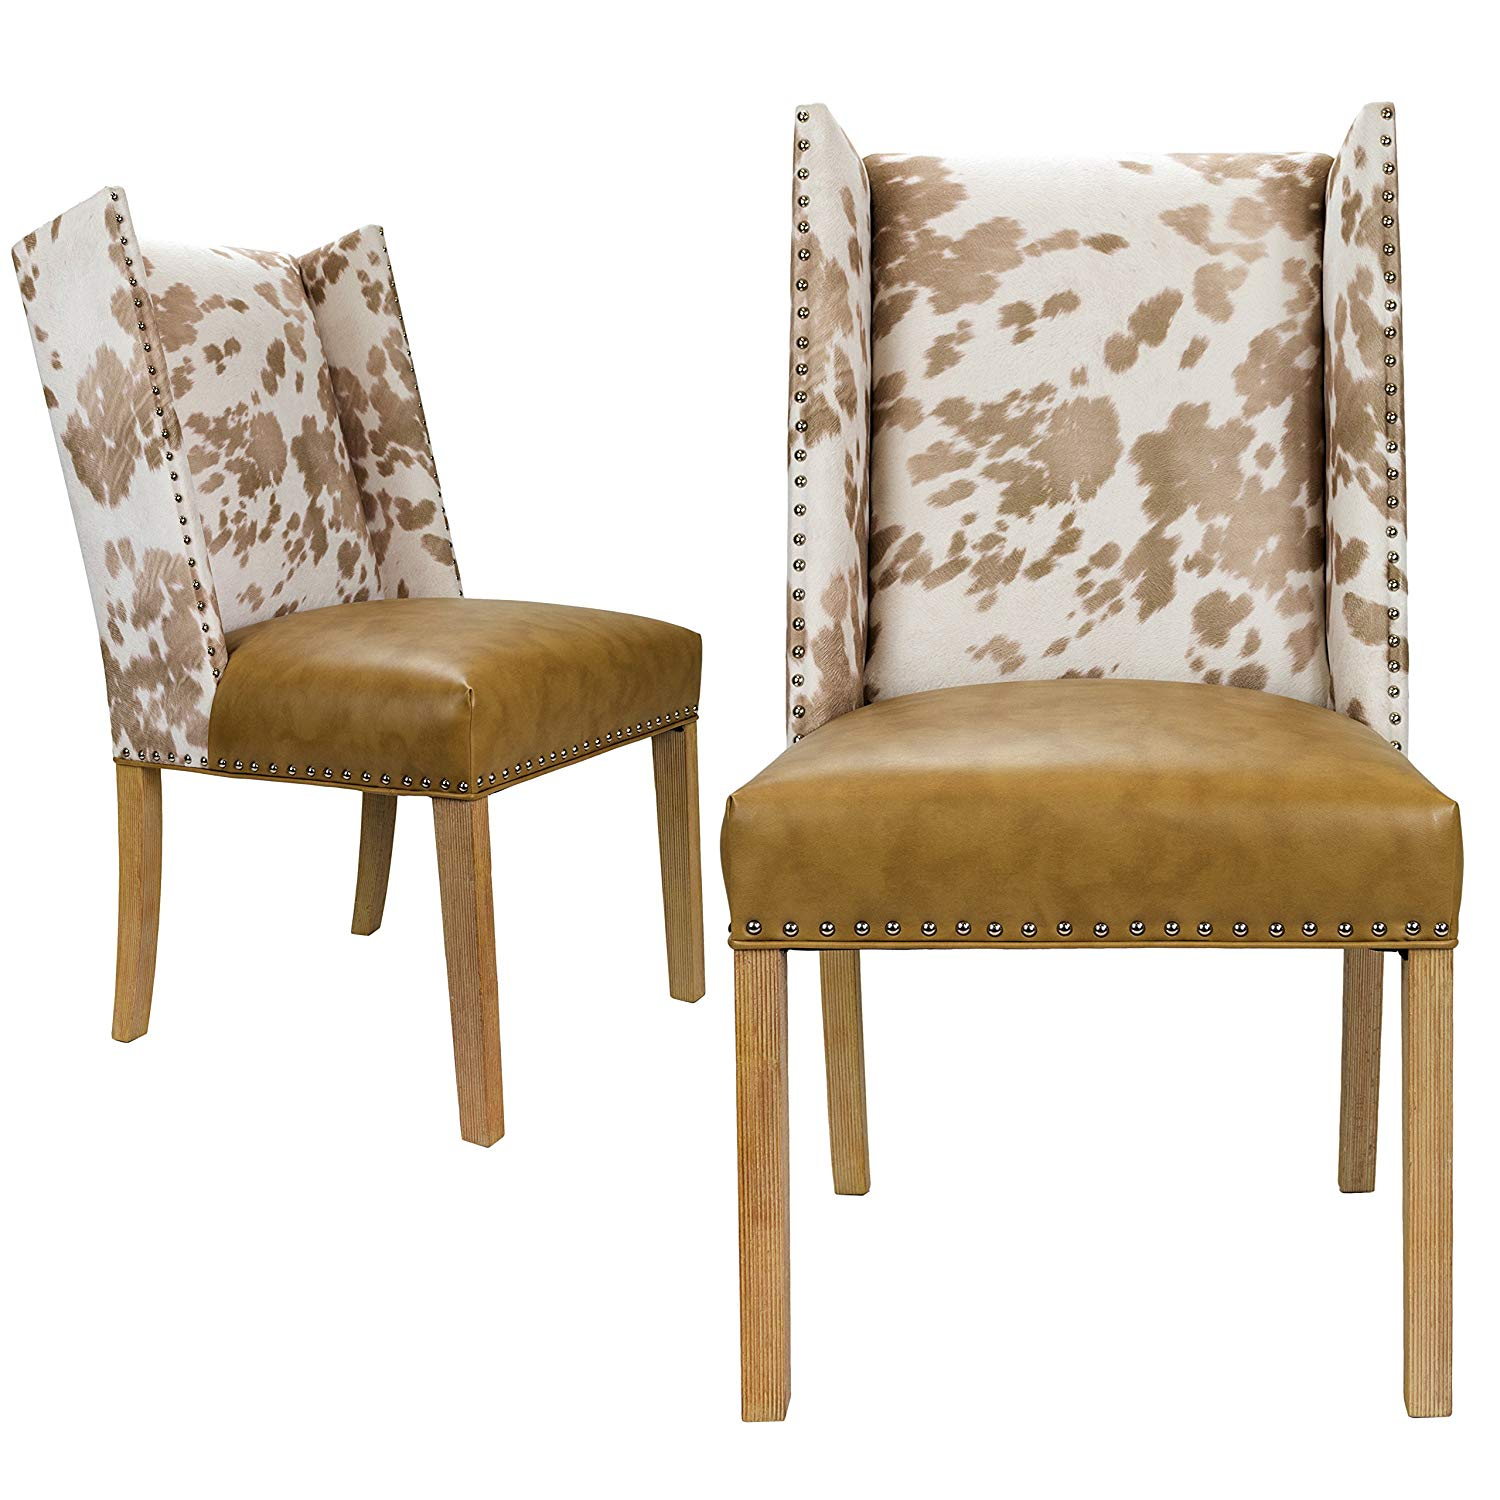 Enjoyable Cheap Upholstered Kid Chair Find Upholstered Kid Chair Gmtry Best Dining Table And Chair Ideas Images Gmtryco